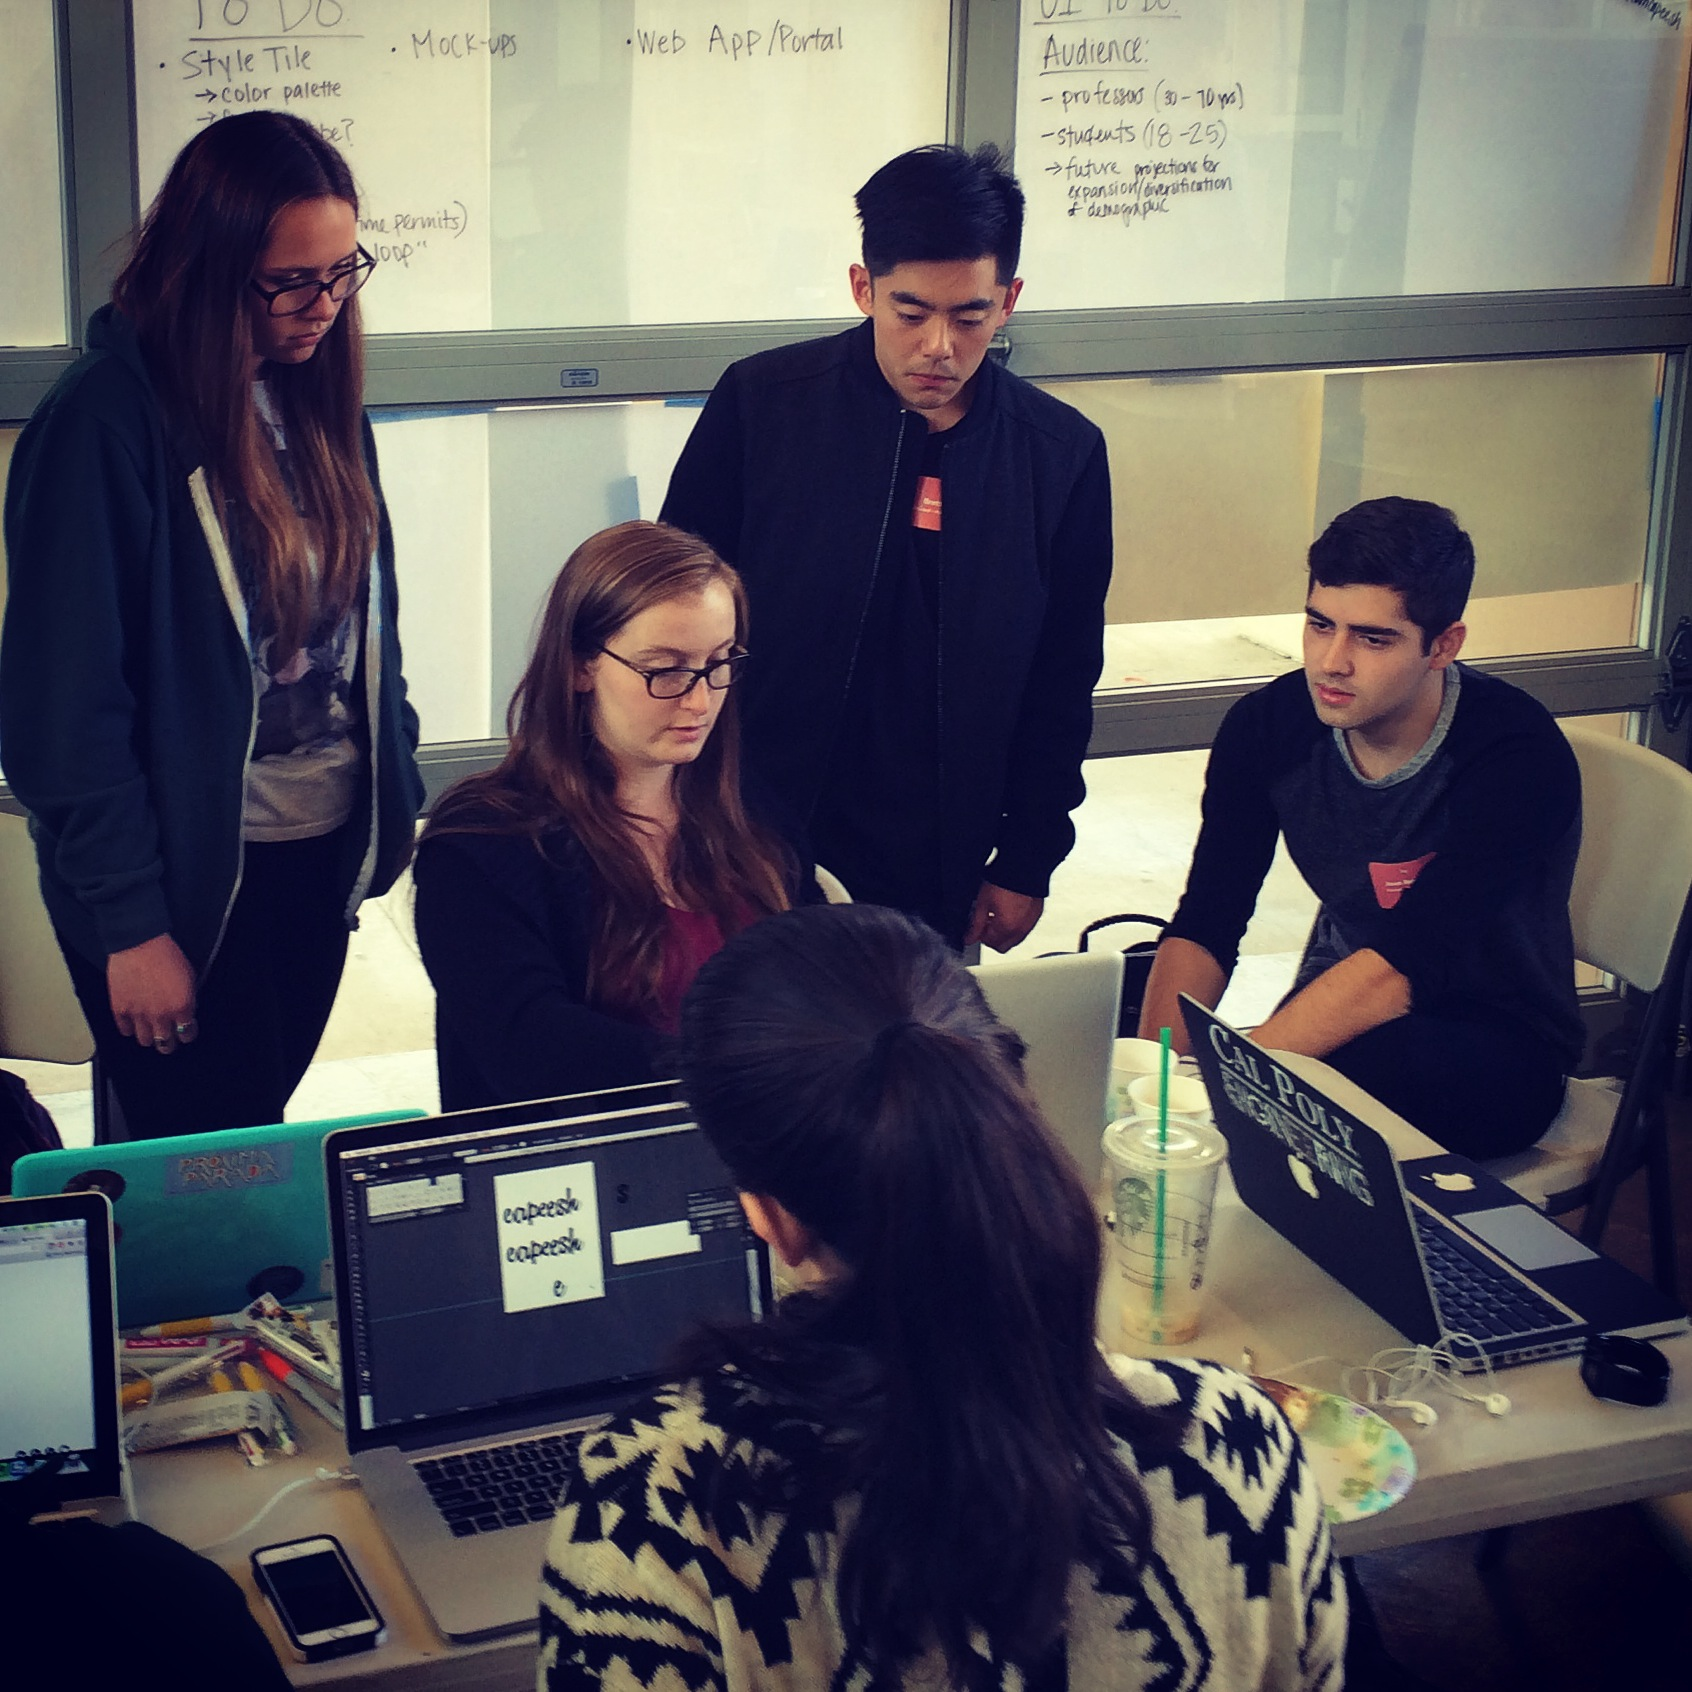 Students working at hackathon